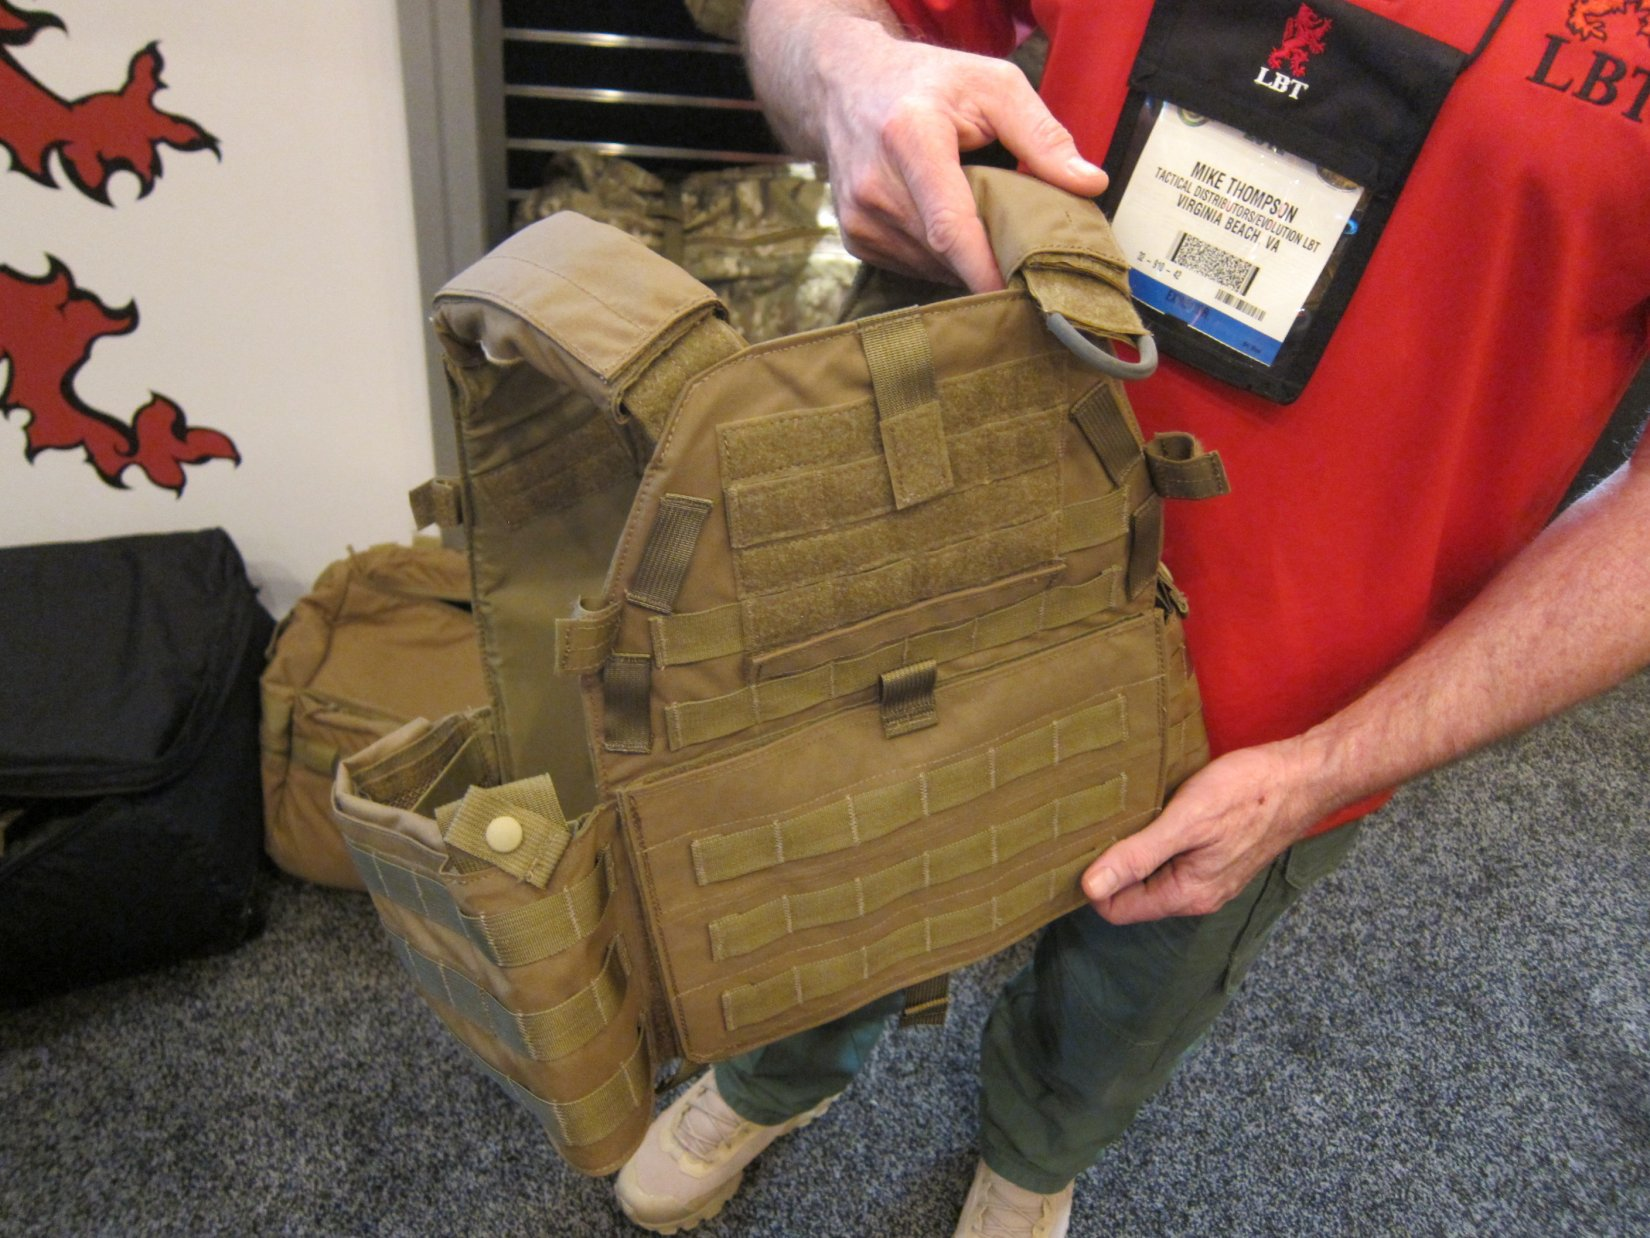 London Bridge Trading LBT Sentinel Releasable Plate Carrier RPC System Quick Release Tactical Armor Plate Carrier Mike Thompson SHOT Show 2012 DefenseReview.com DR 2 London Bridge Trading (LBT) Modular Sentinel Releasable Plate Carrier (RPC) Tactical Armor Carrier/Vest with Quick Release Assault Panel (QRAP) and Kangaroo Pouch Mag Carrier Insert